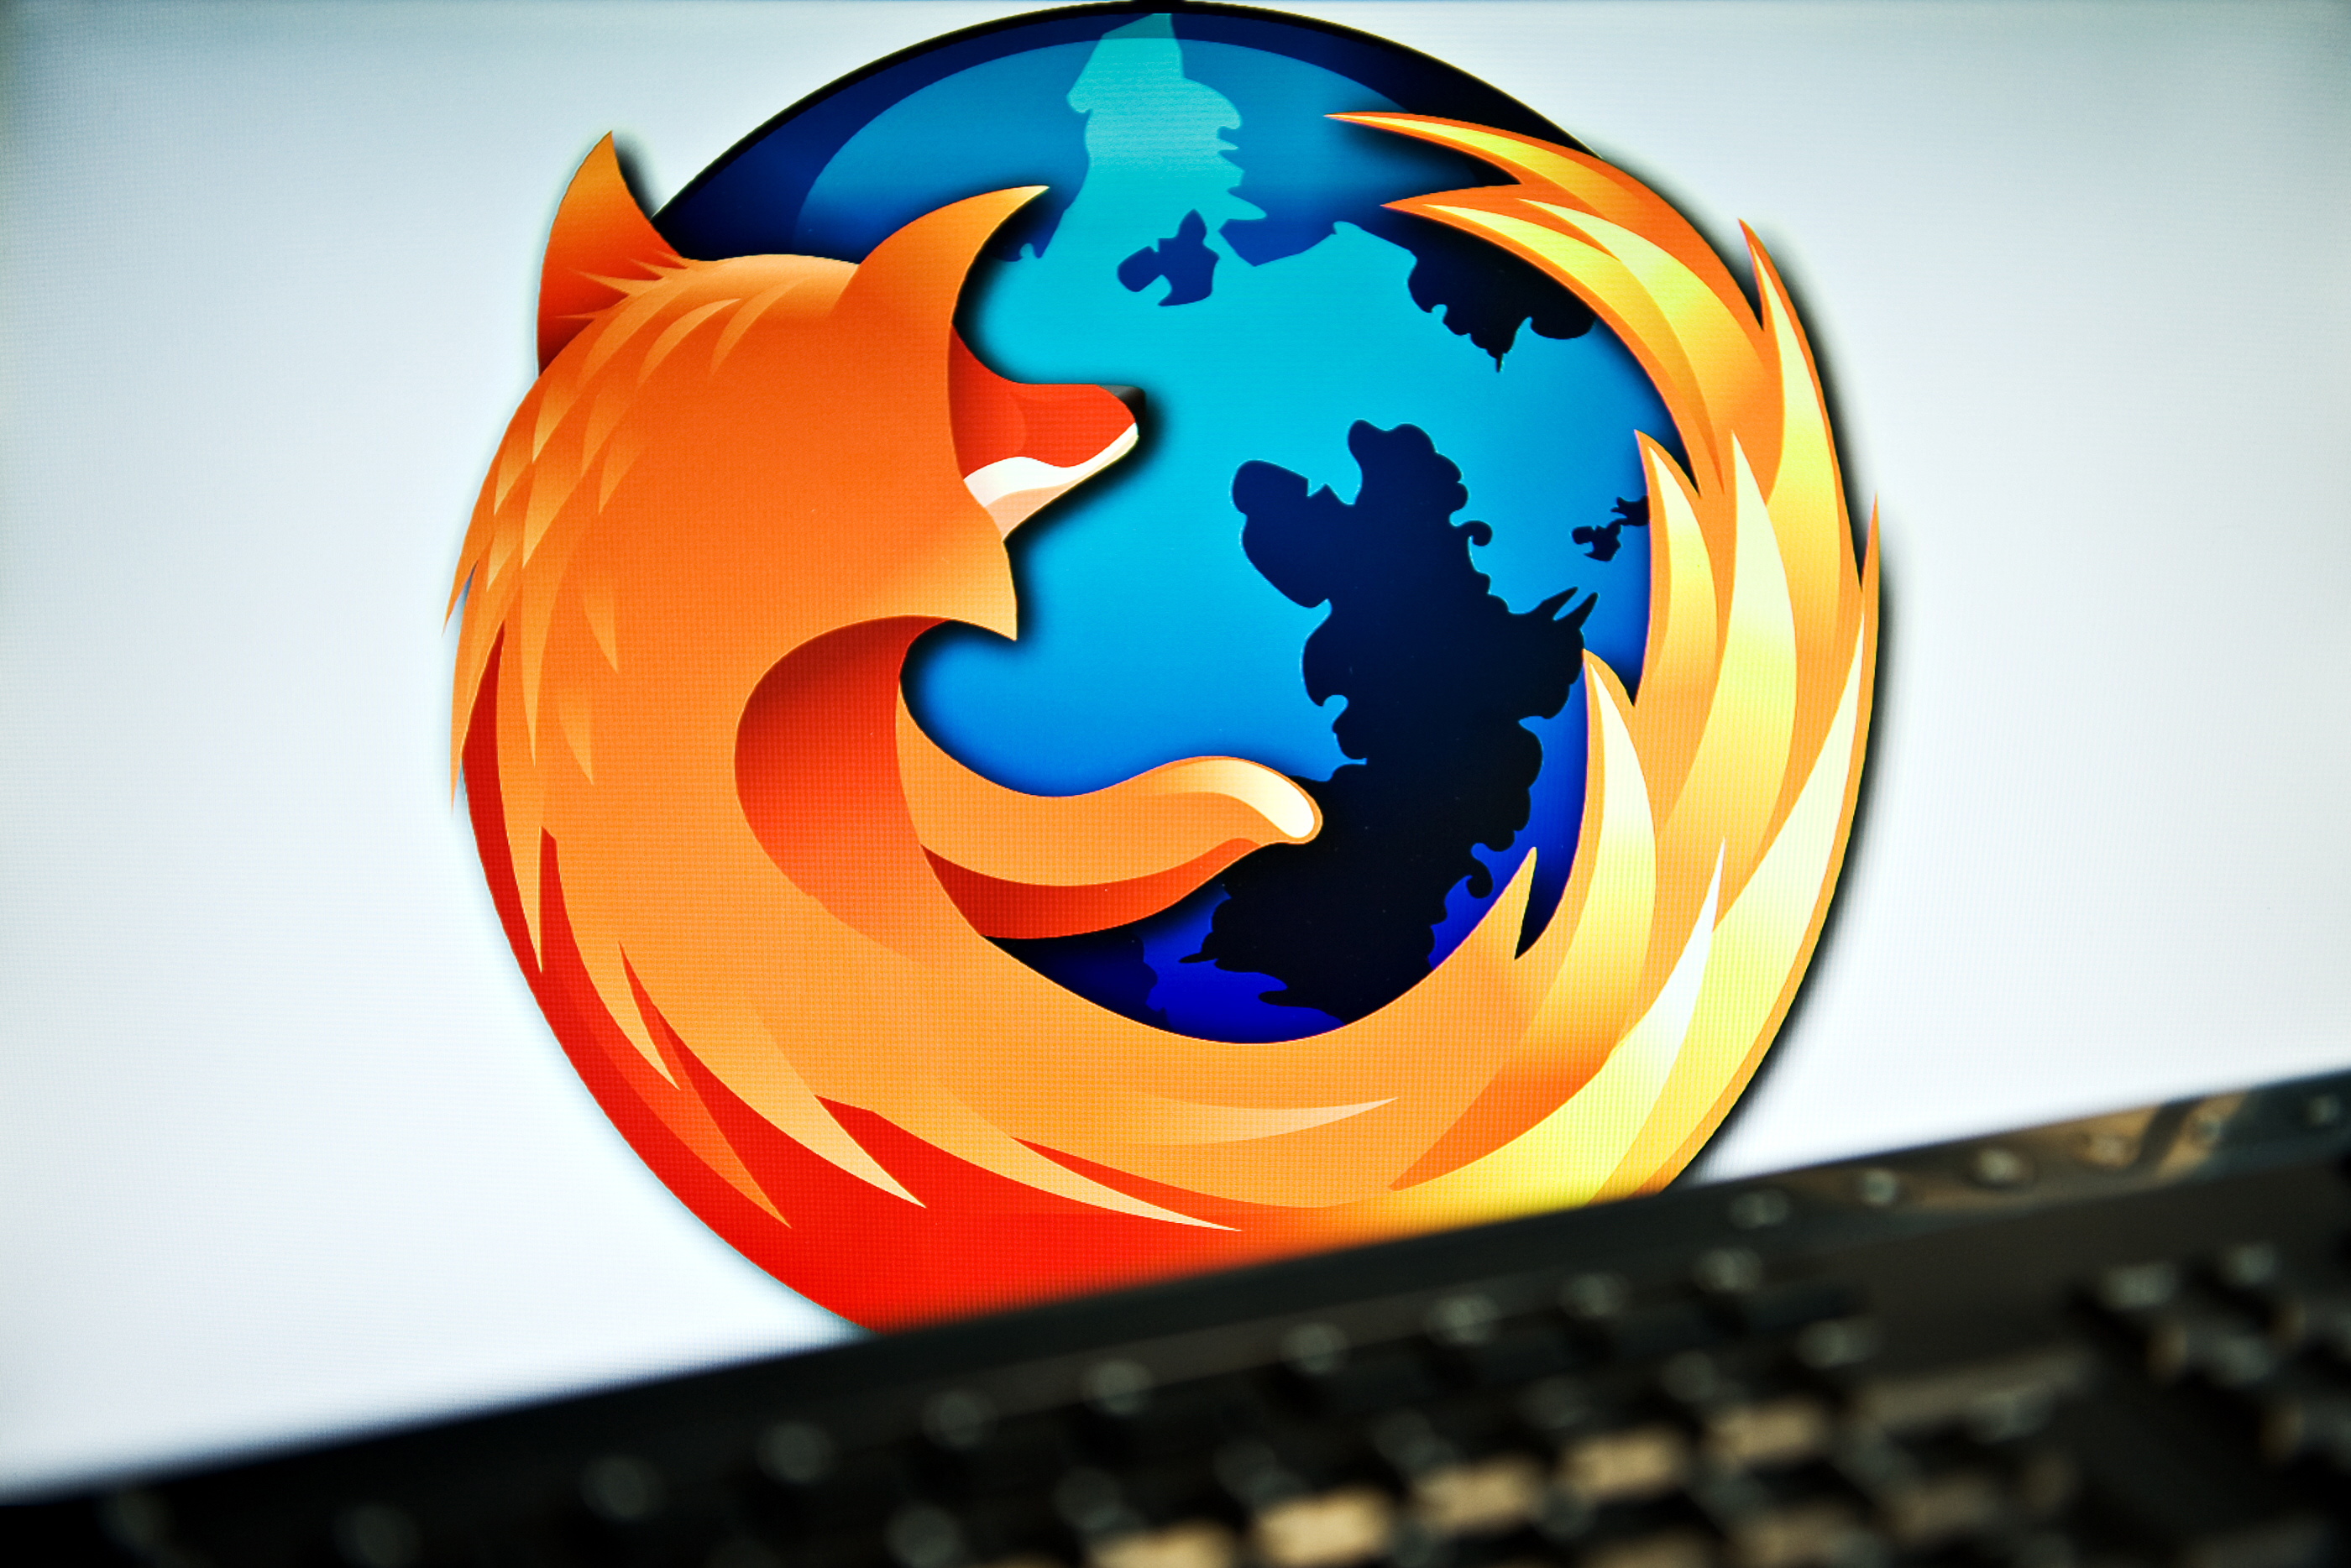 techcrunch.com - Natasha Lomas - Mozilla adds website breach notifications to Firefox